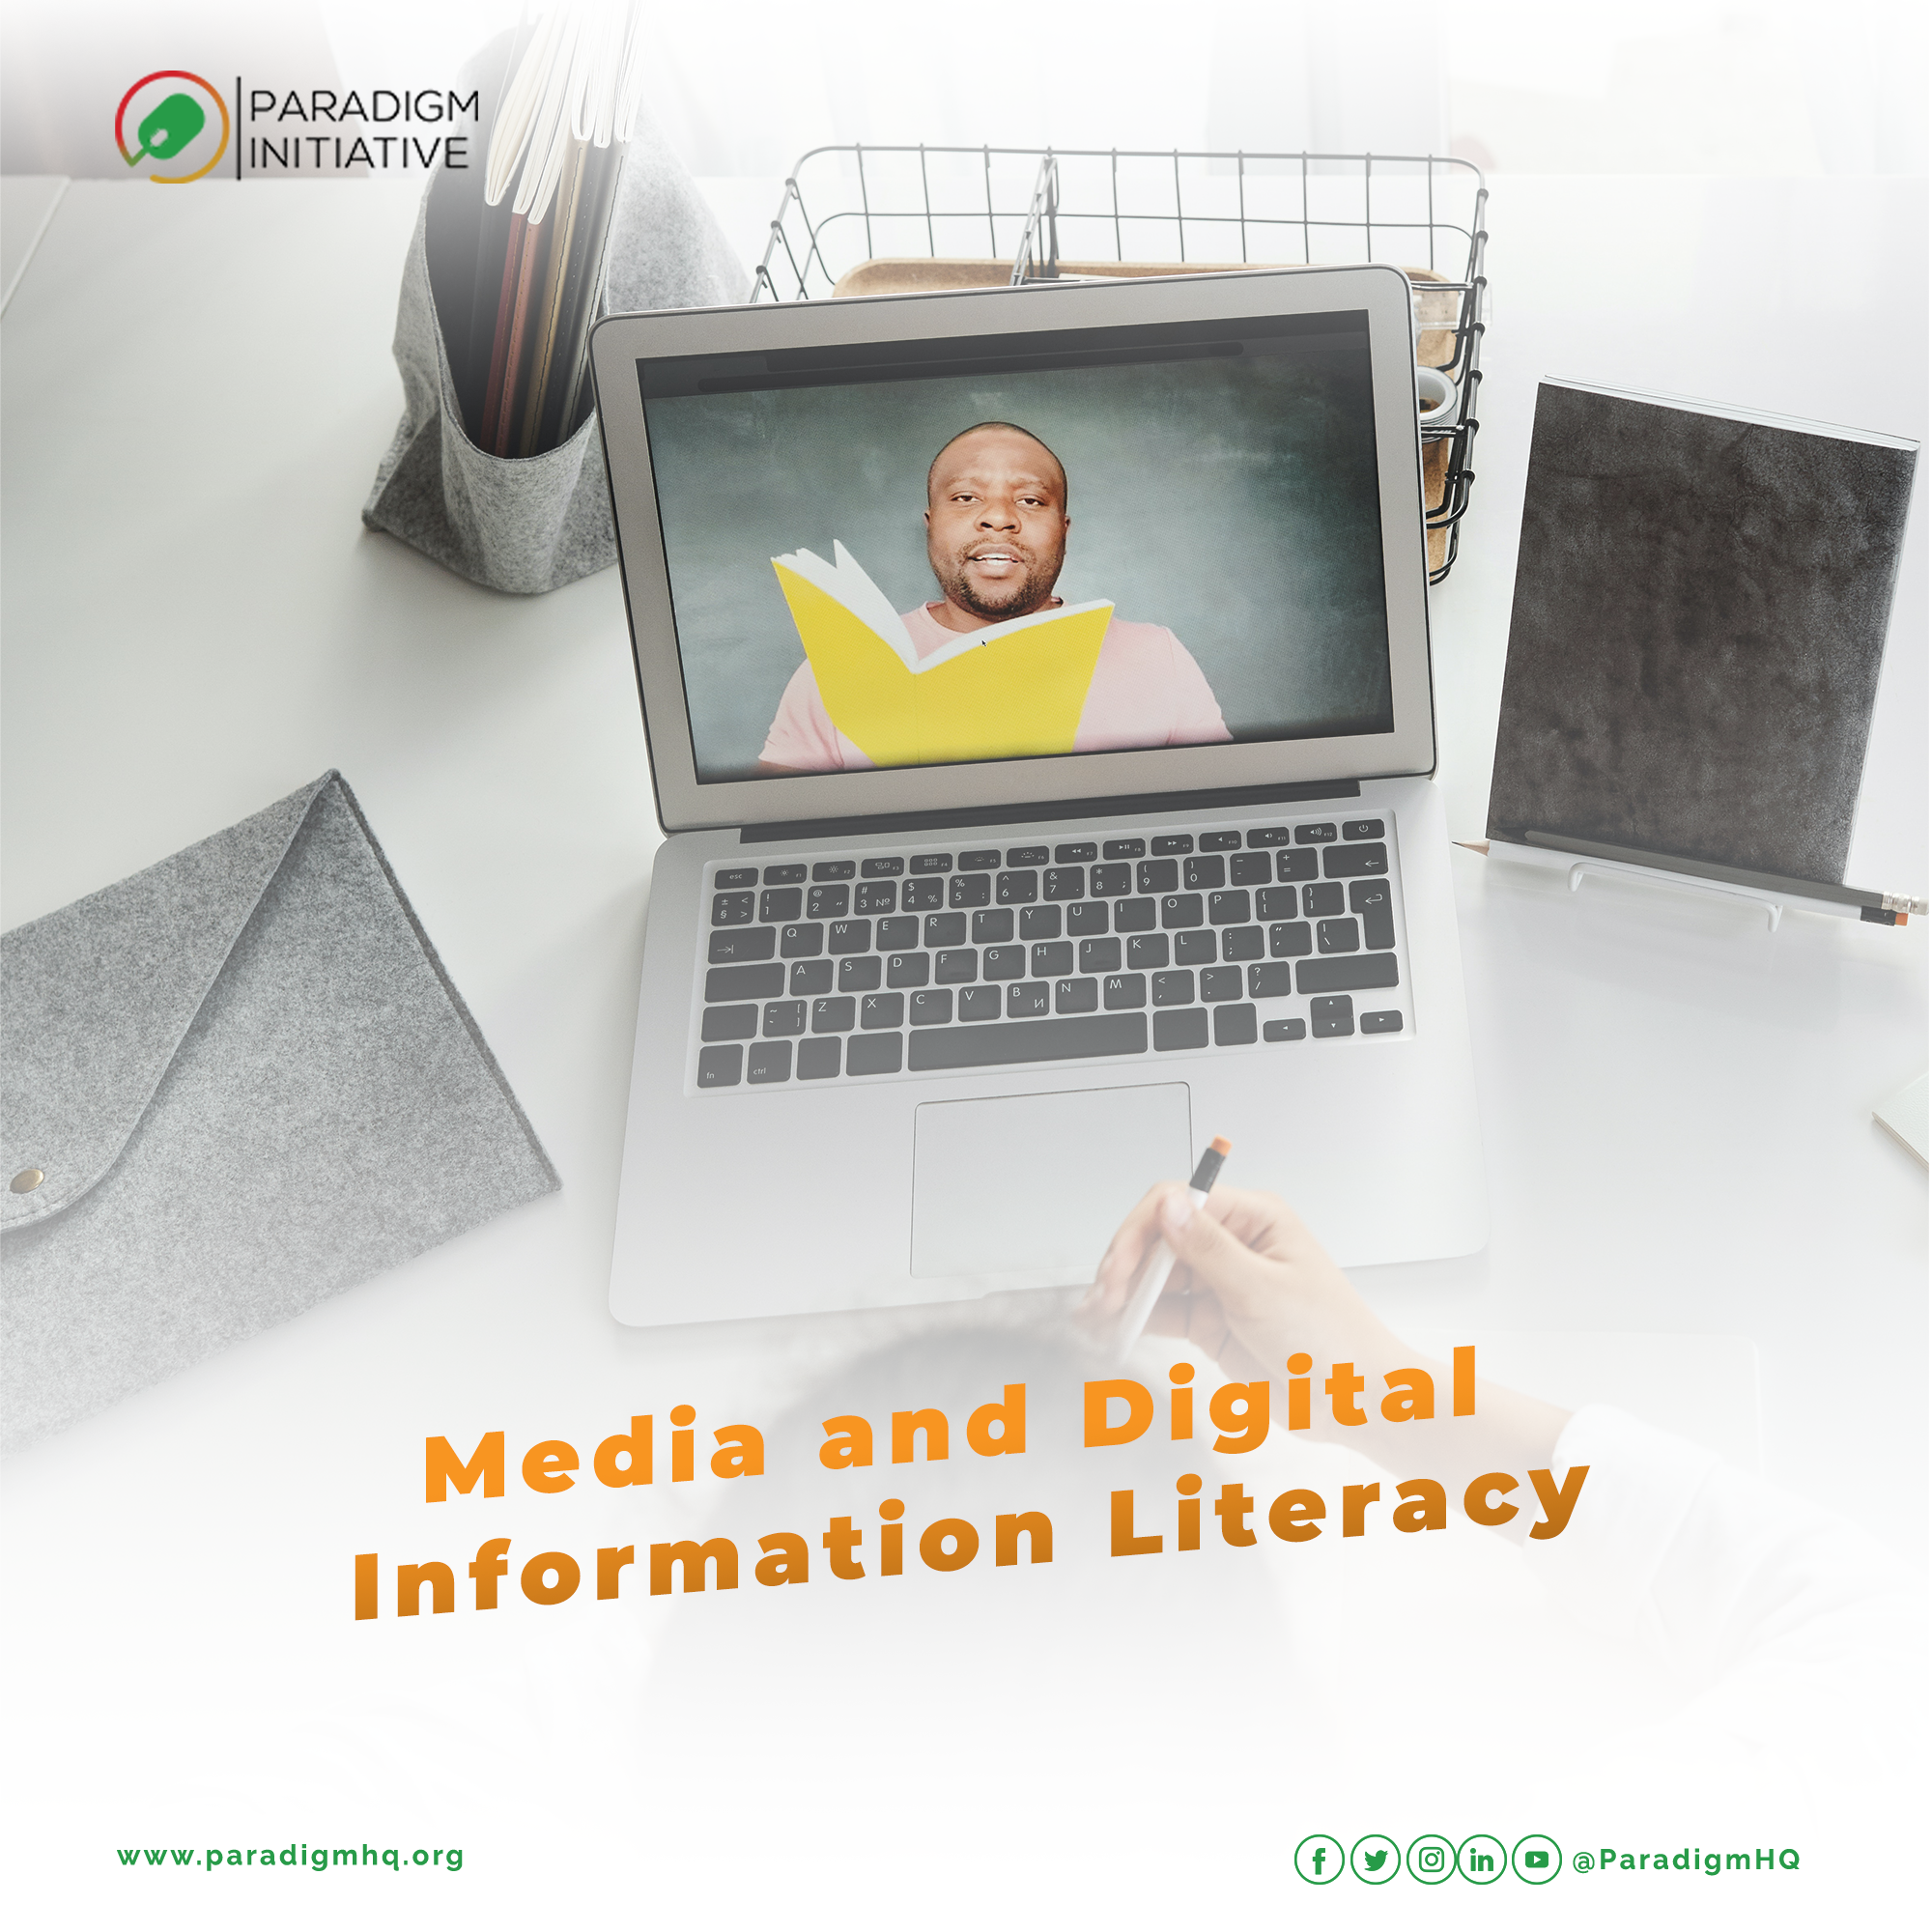 Media and Digital Information Literacy